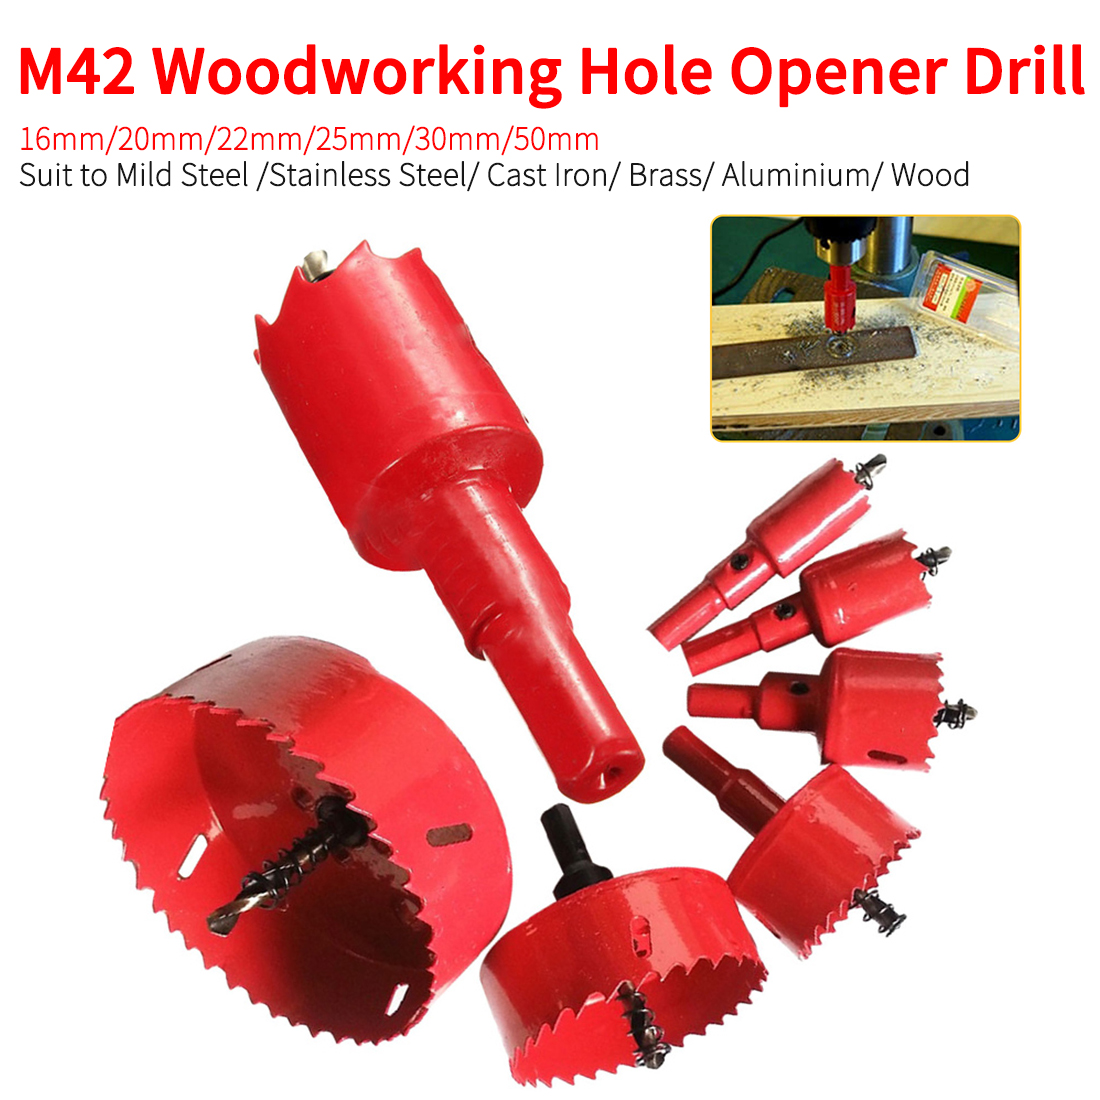 16mm-50mm M42 Steel Drilling Hole Saw Drill Bit Cutter For Aluminum Iron Stainless Steel DIY Woodworking Hole Opener